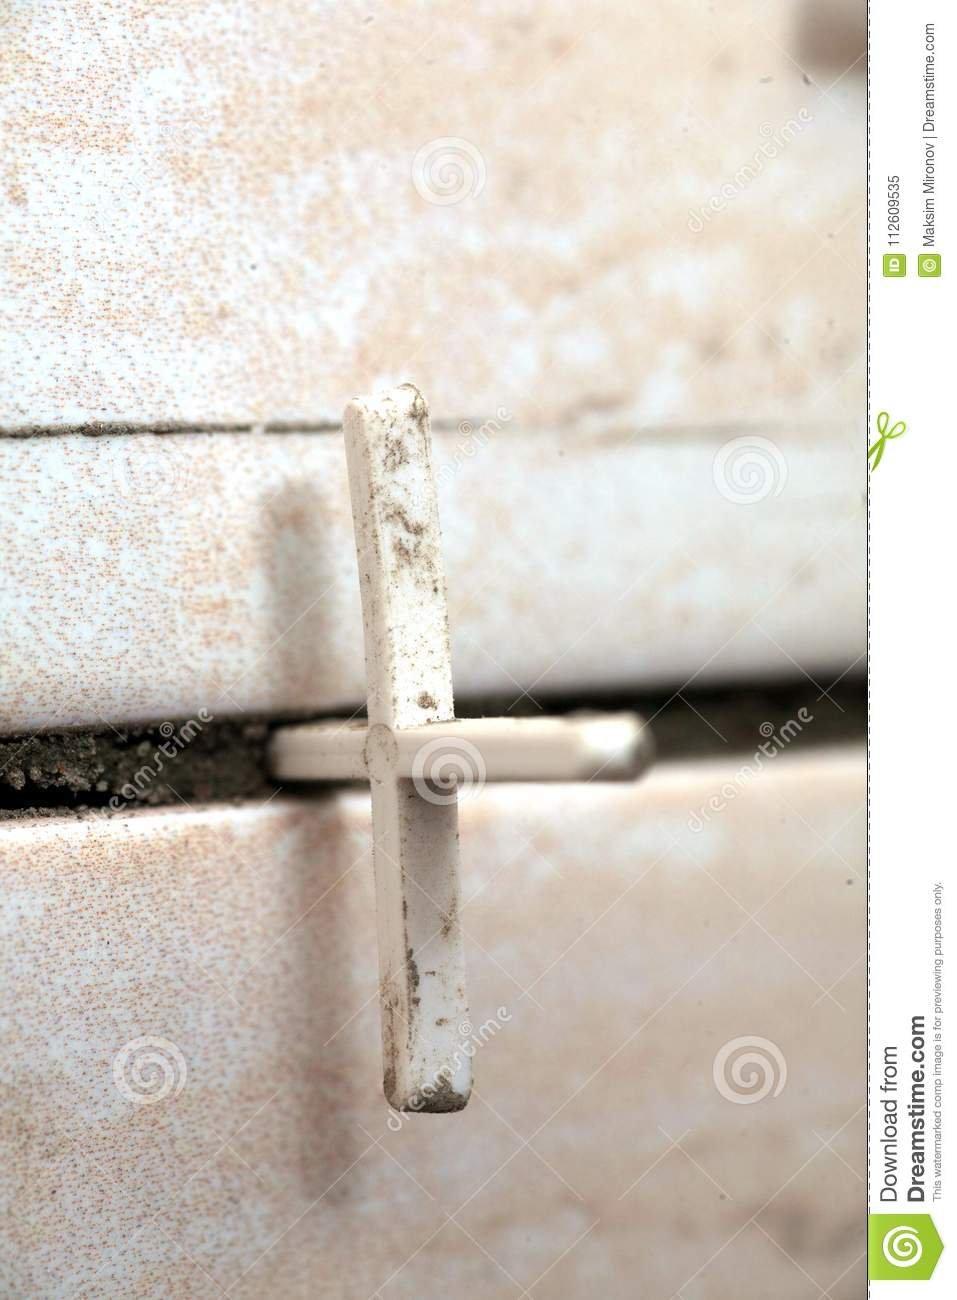 Ceramic Tiles On Bathroom Walls Stock Image Image Of Construction